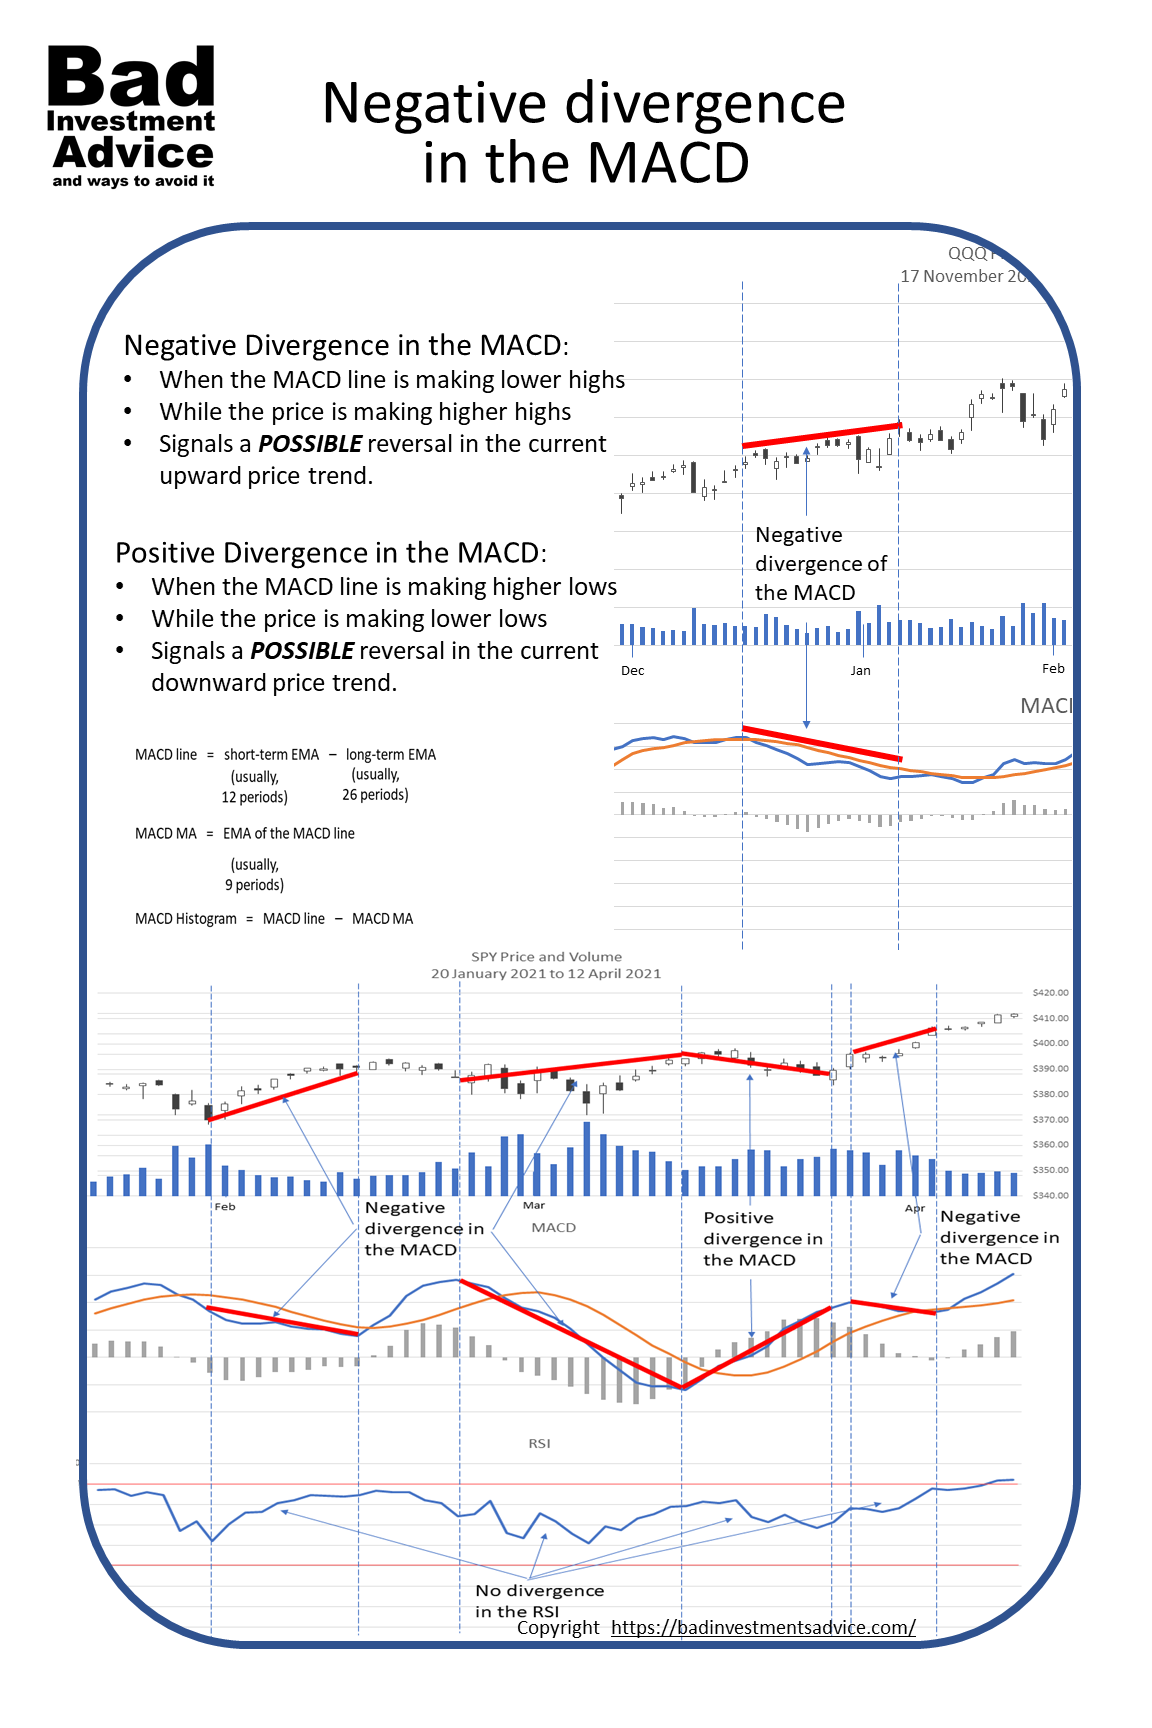 What is negative divergence in the MACD summary